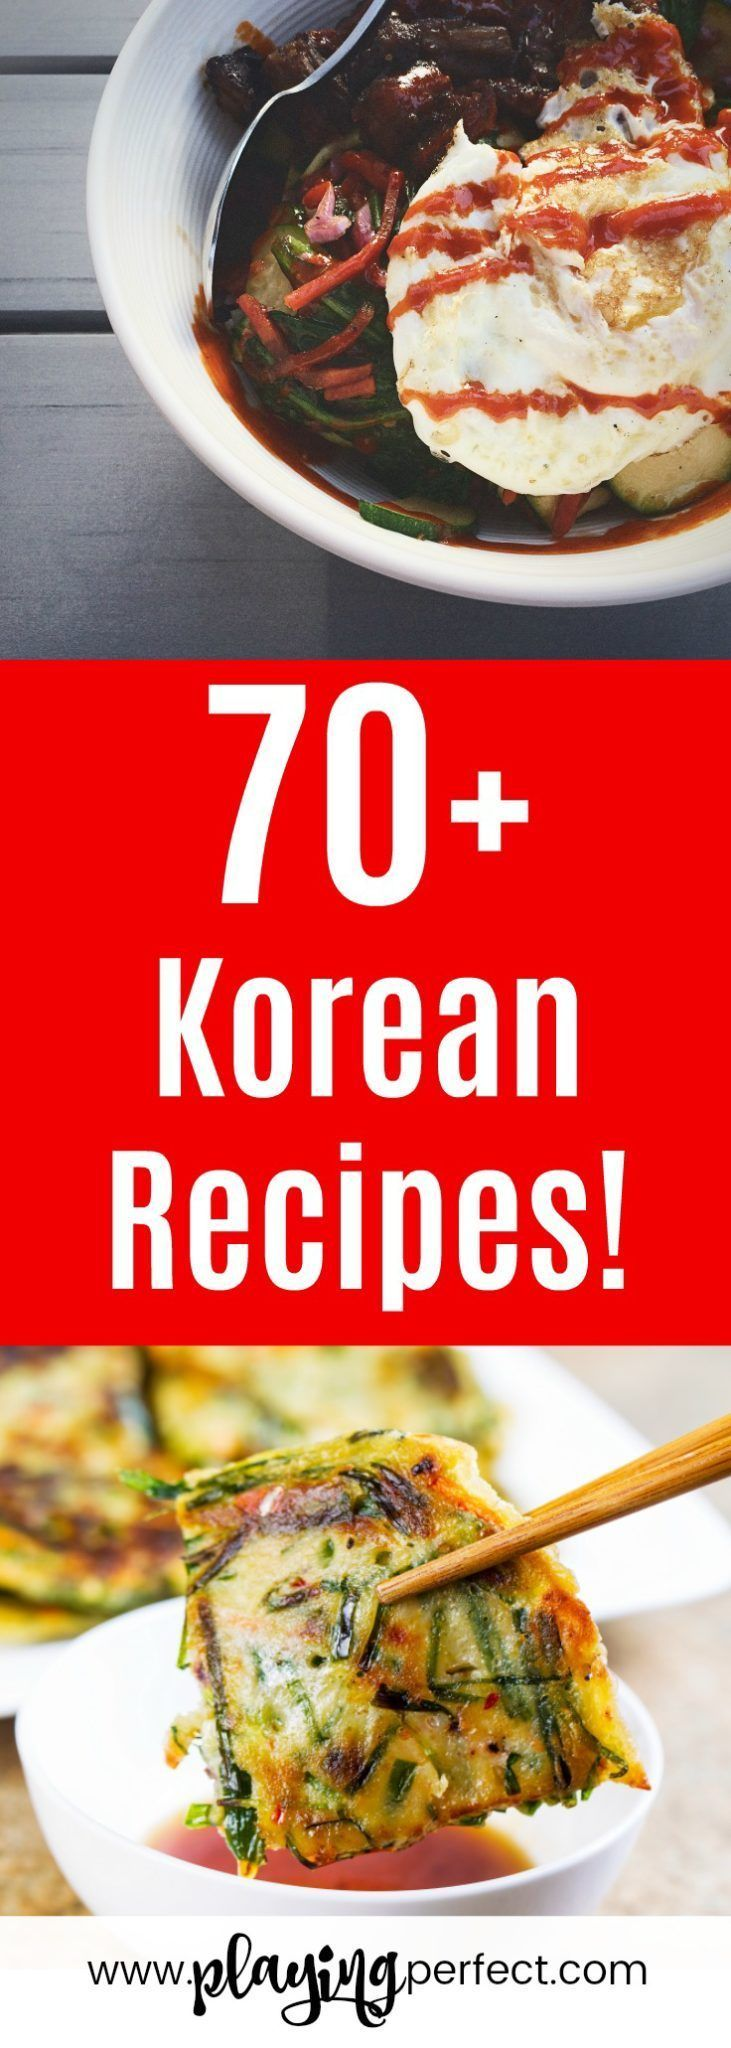 73 korean recipes that will make you excited to get in the kitchen 73 korean recipes that will make you excited to get in the kitchen korean dessert korean side dishes and meal planning printable forumfinder Gallery